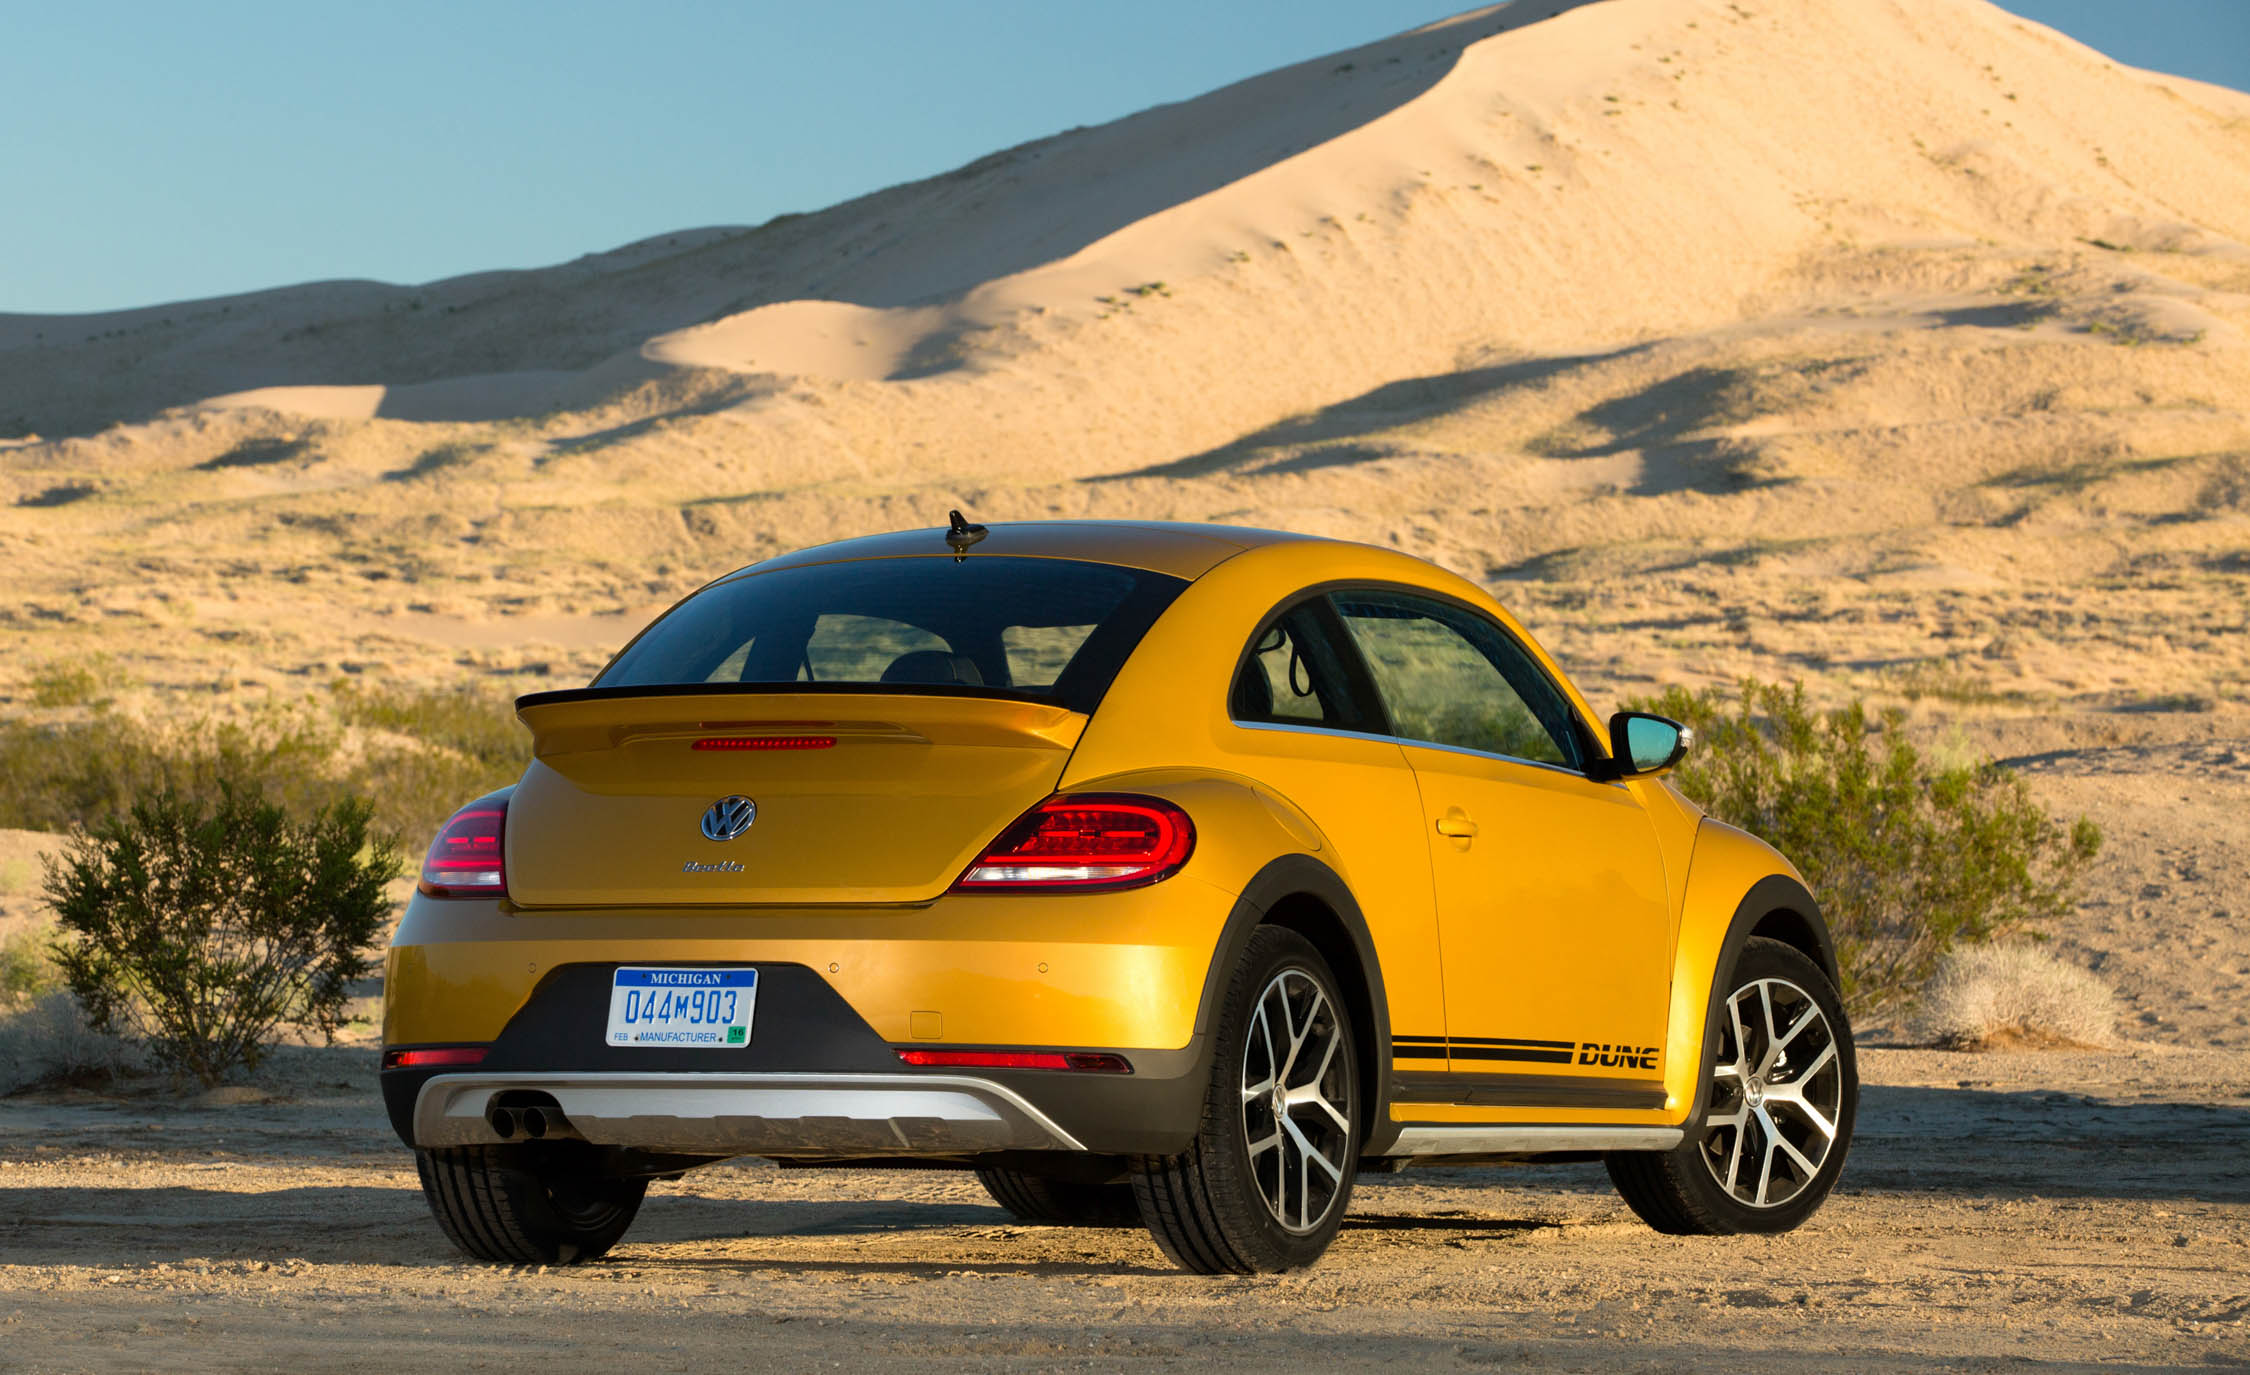 2016 Volkswagen Beetle Dune Exterior Full Rear and Side